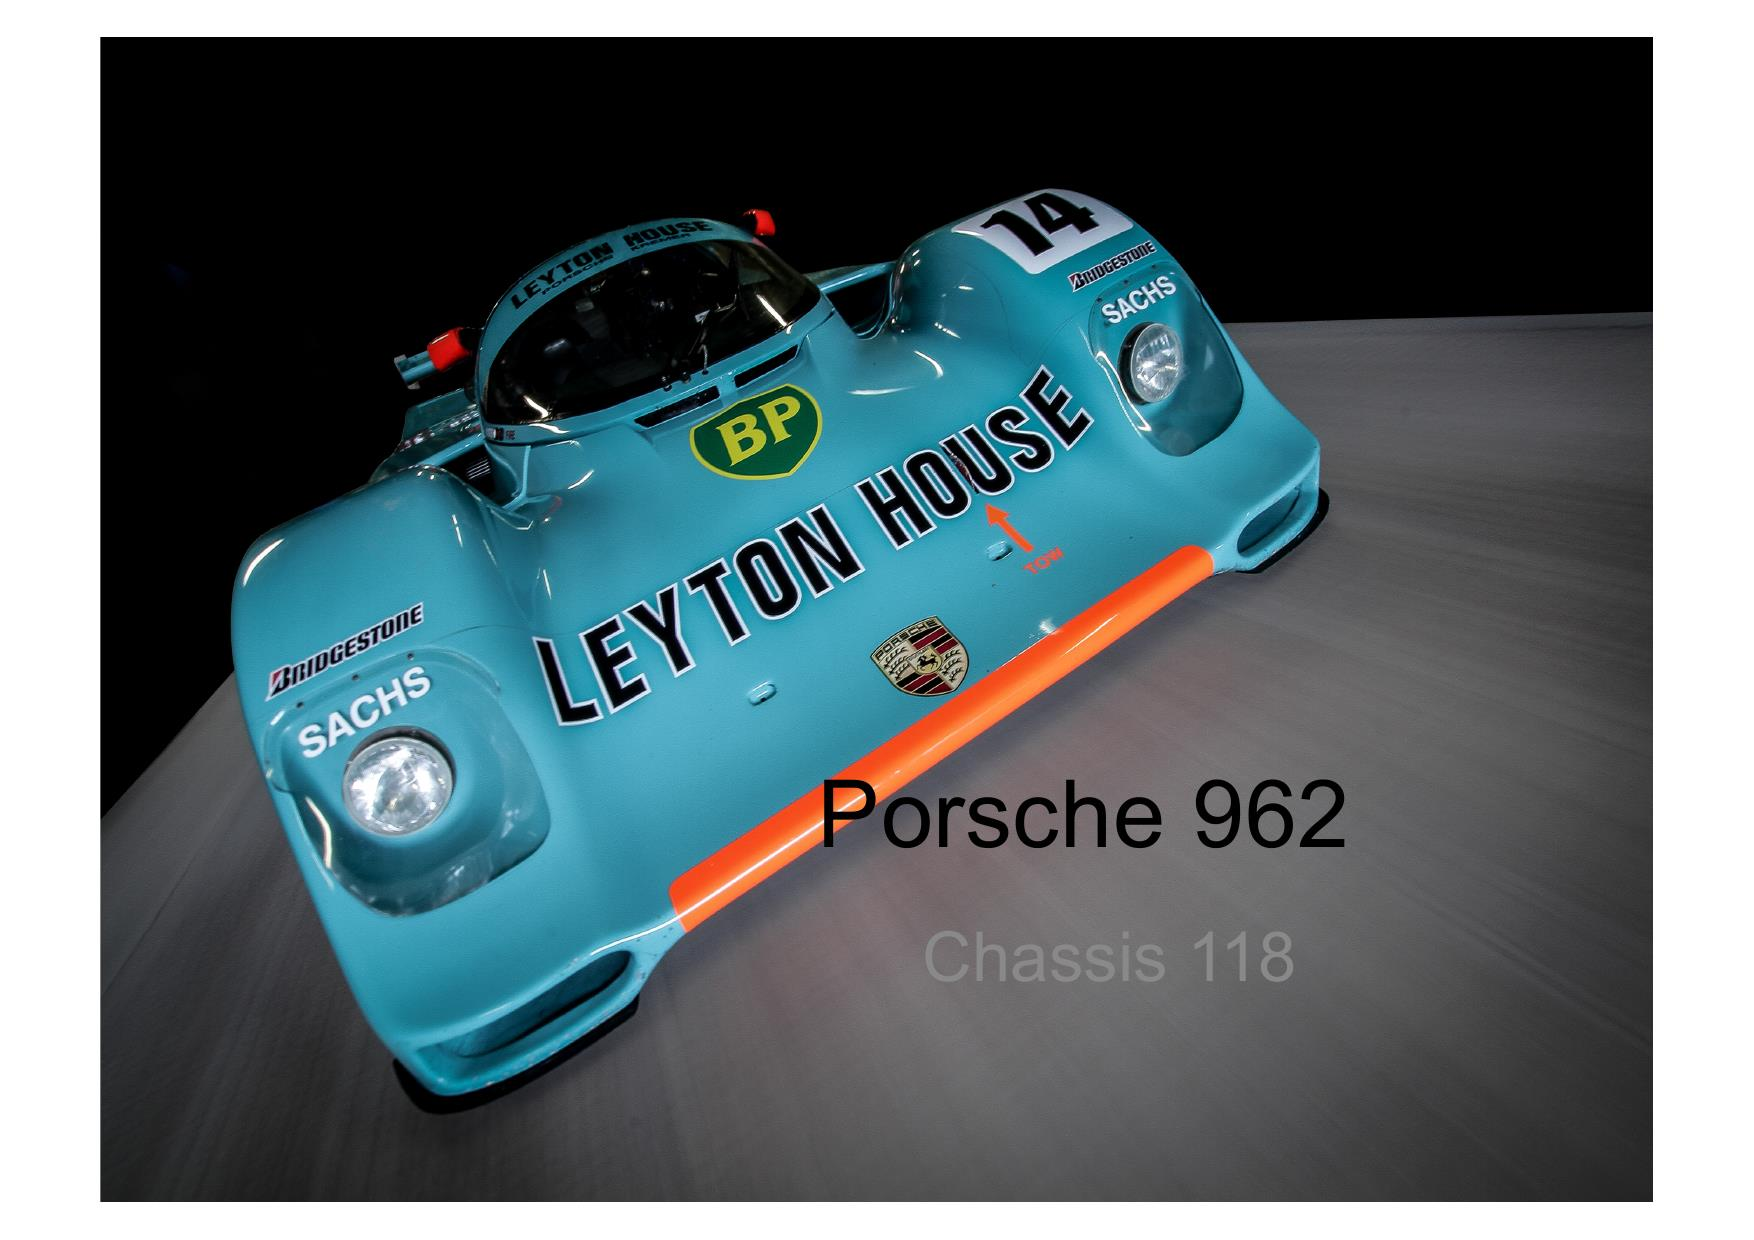 porsche 962 porsche cars history. Black Bedroom Furniture Sets. Home Design Ideas